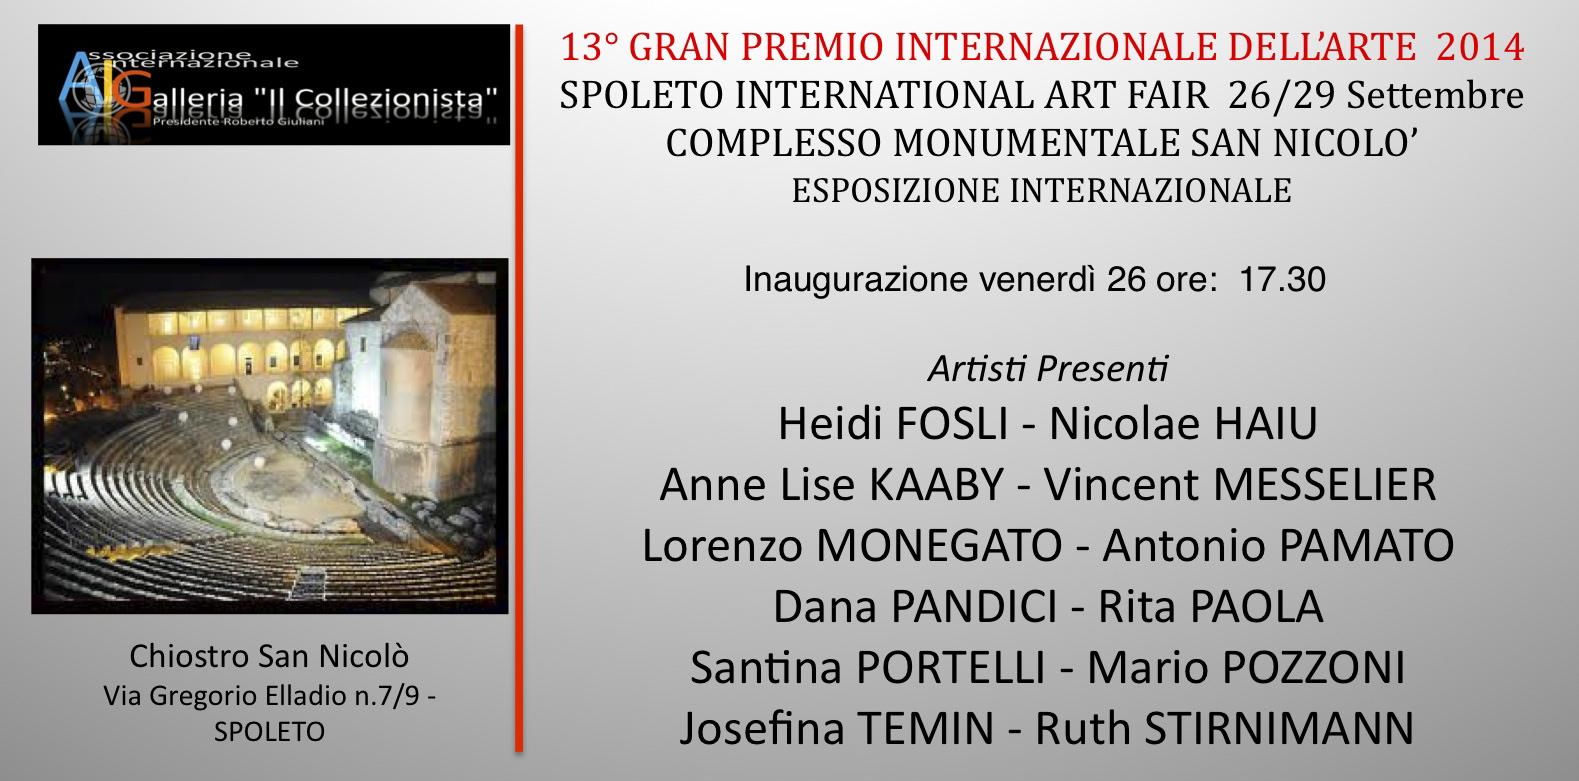 Invitation at the Spoleto International Art Festival 2014, Spopleto/Italy